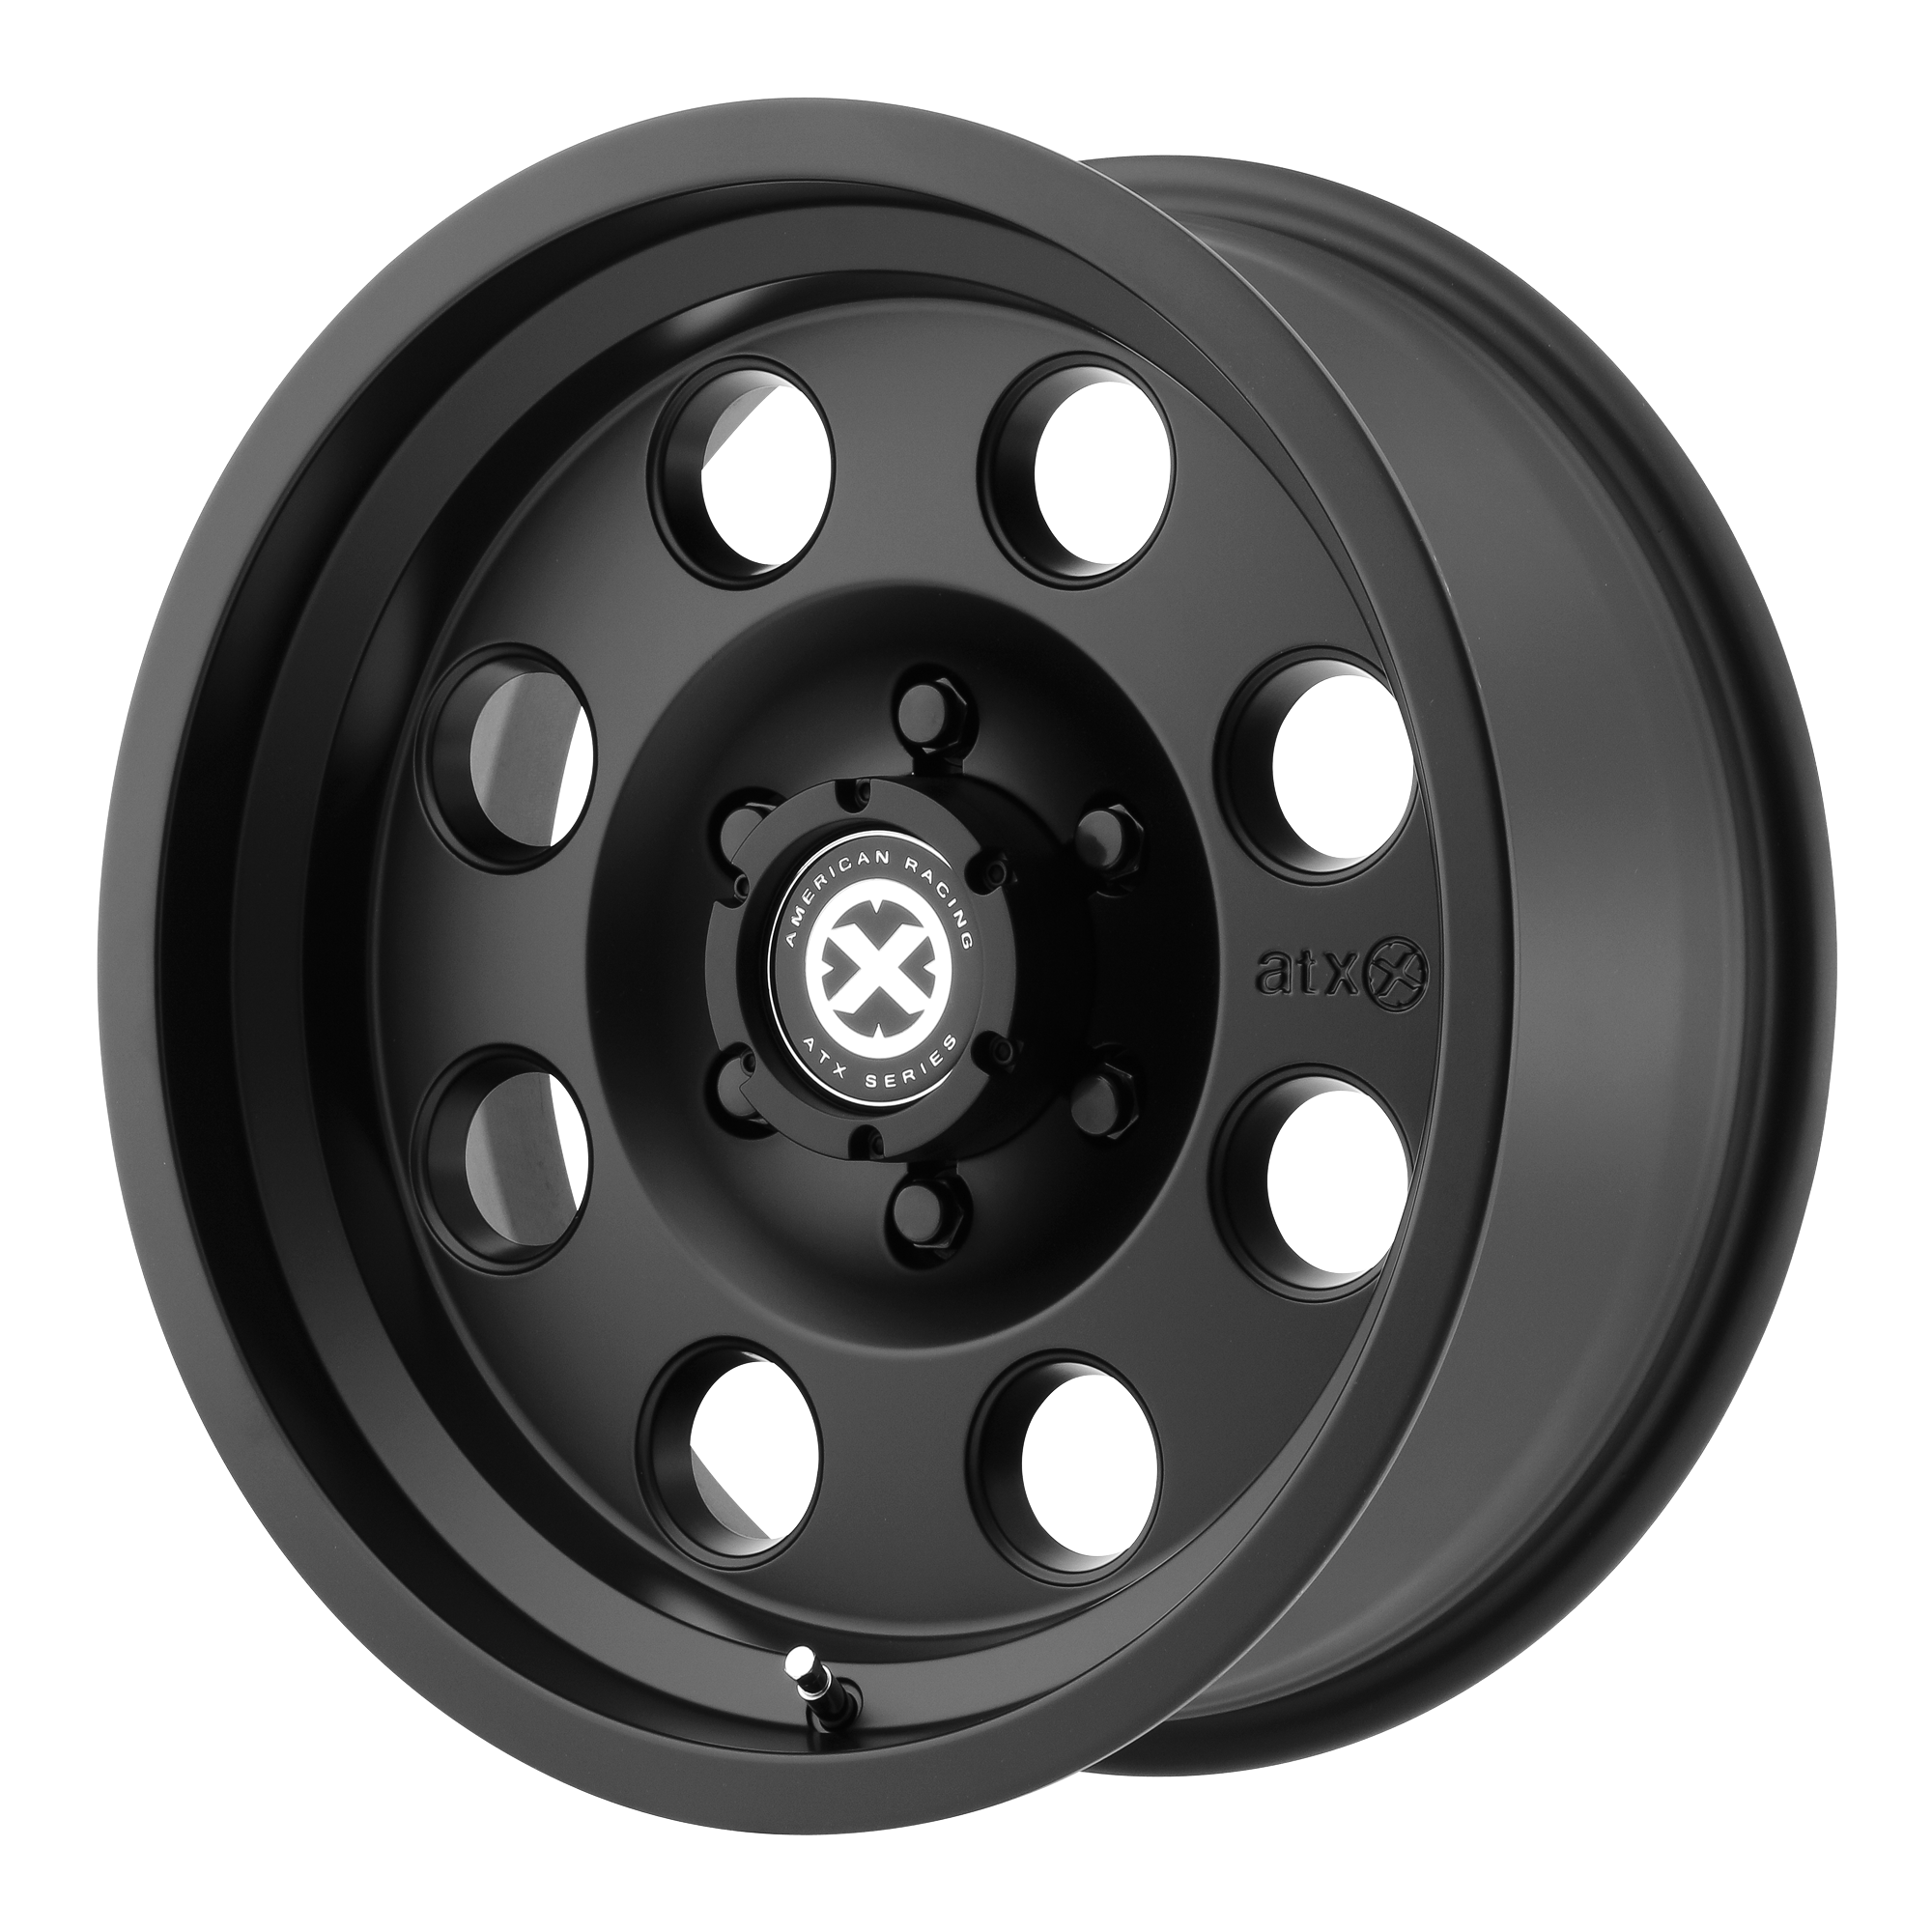 ATX Series Offroad Wheels MOJAVE II Satin Black